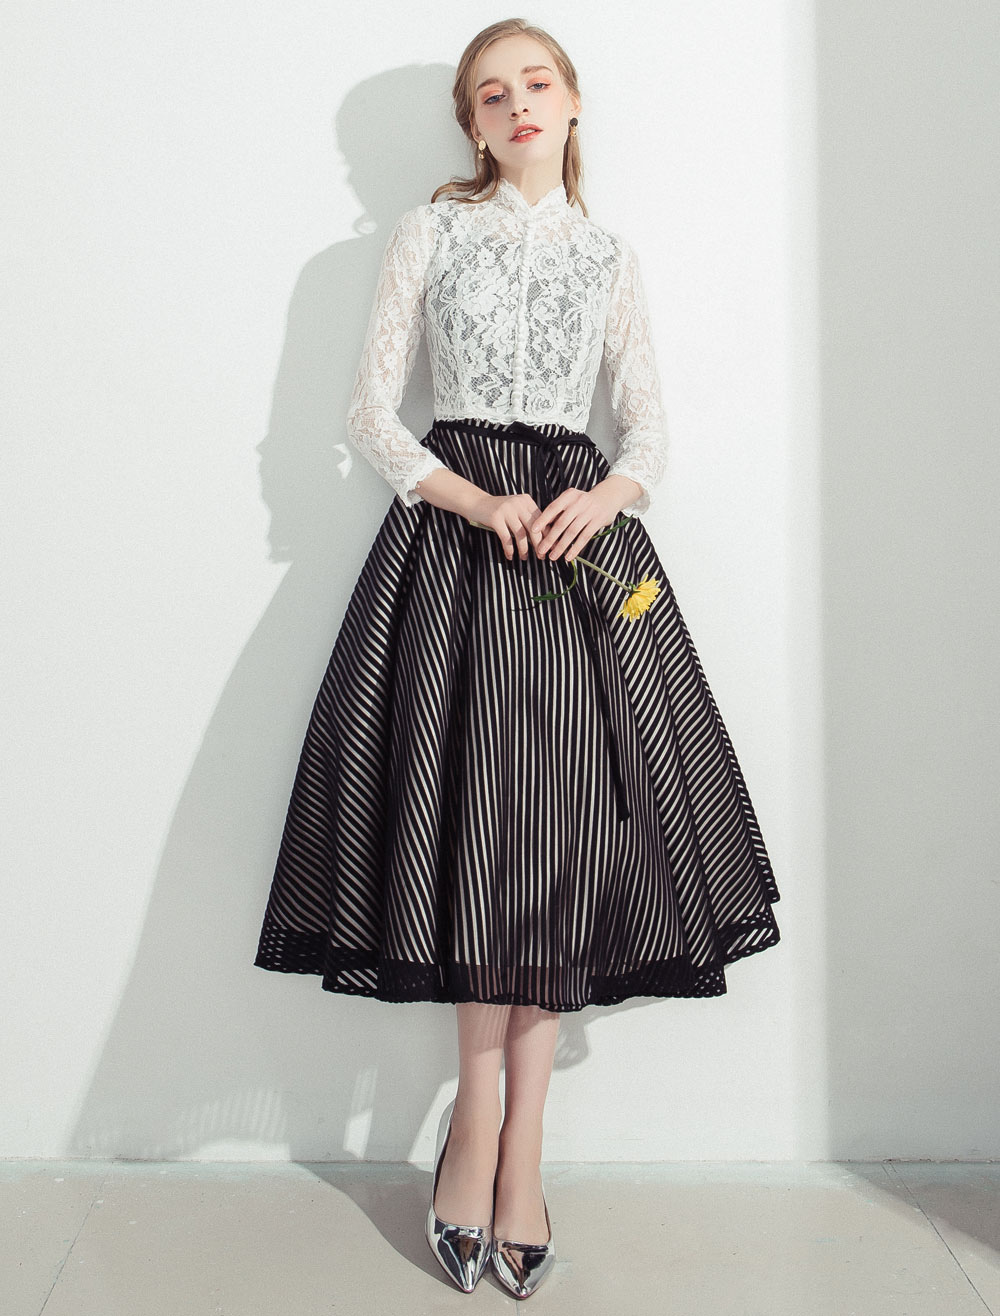 Lace Cocktail Dresses 2018 Short Prom Dresses Stand Collar Long Sleeve A Line Homecoming Dresses (Wedding) photo